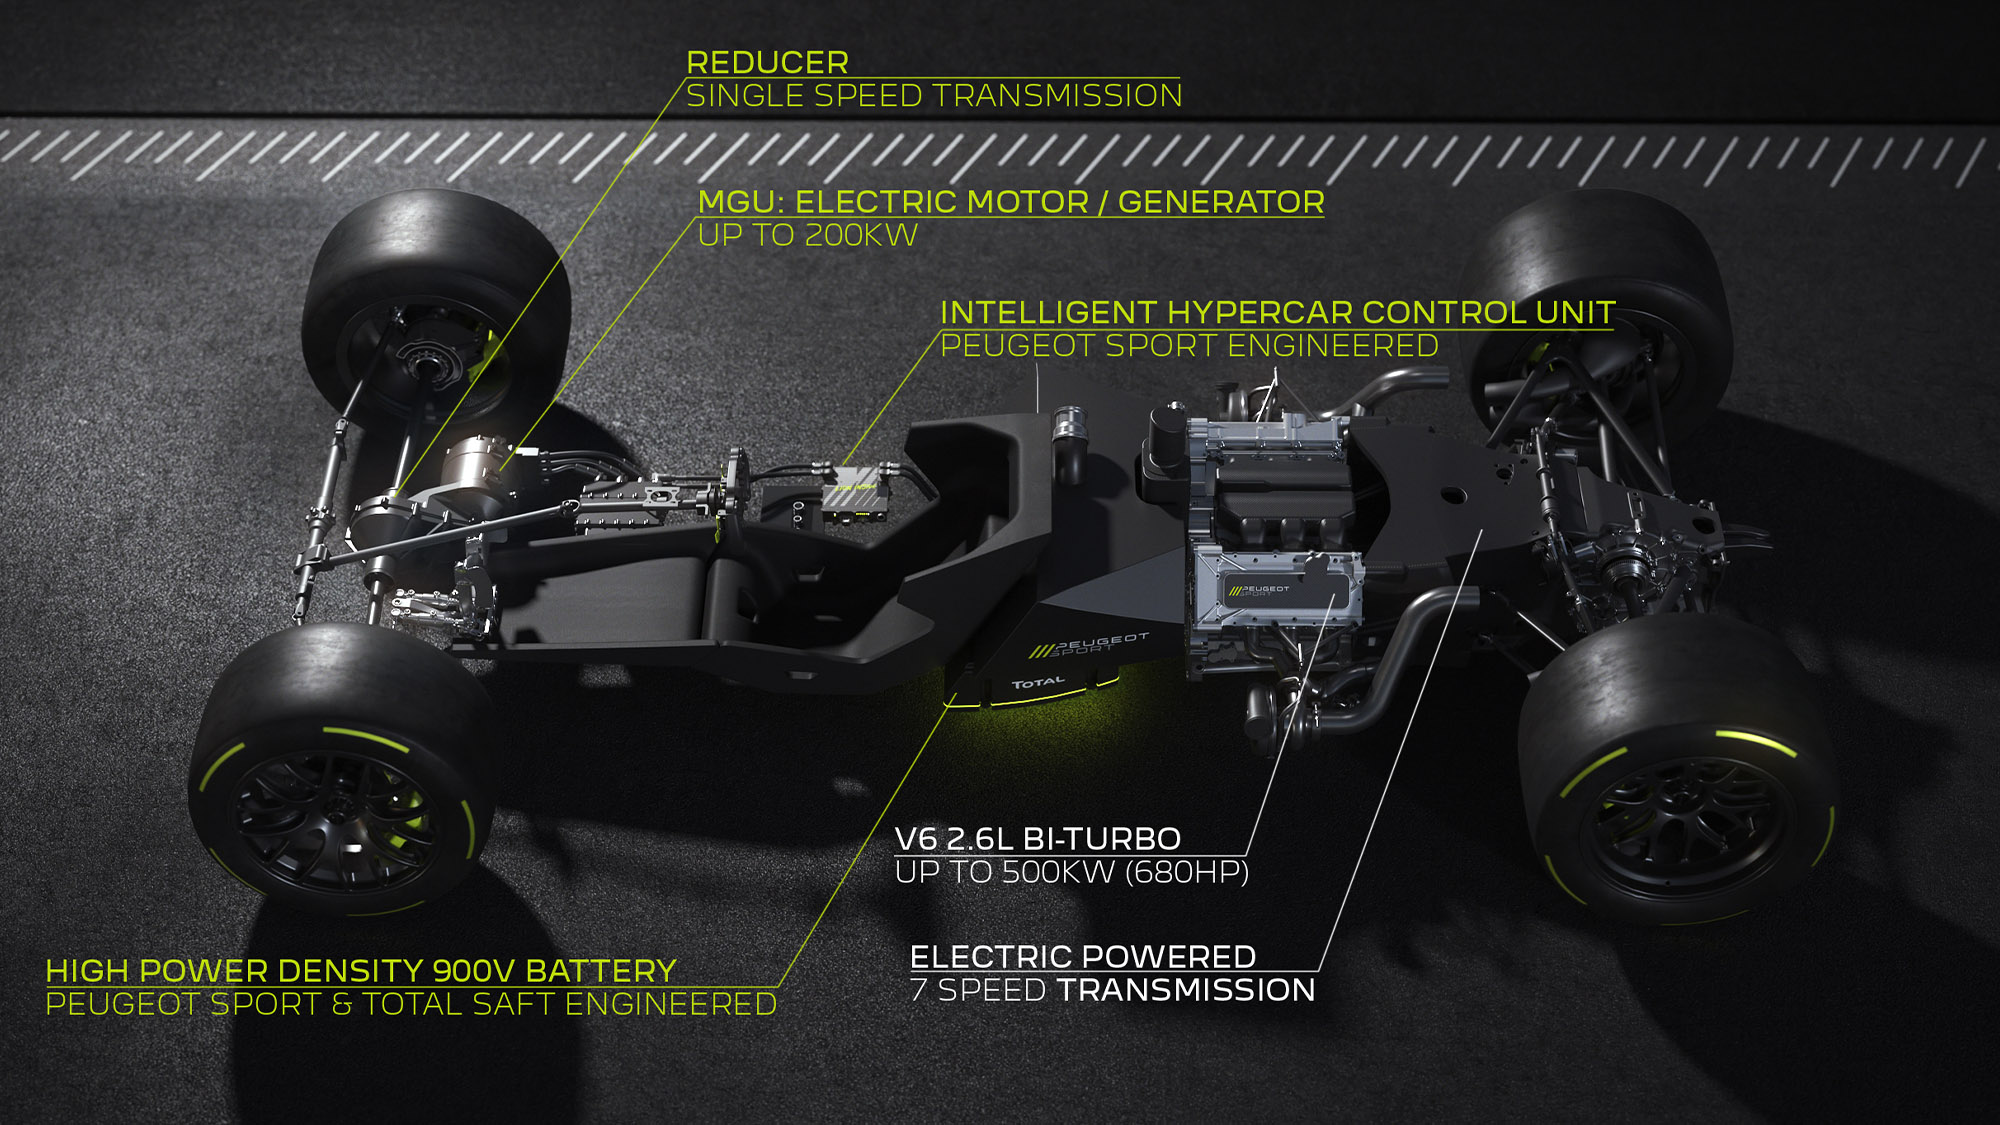 Peugeot hypercar powertrain annotated